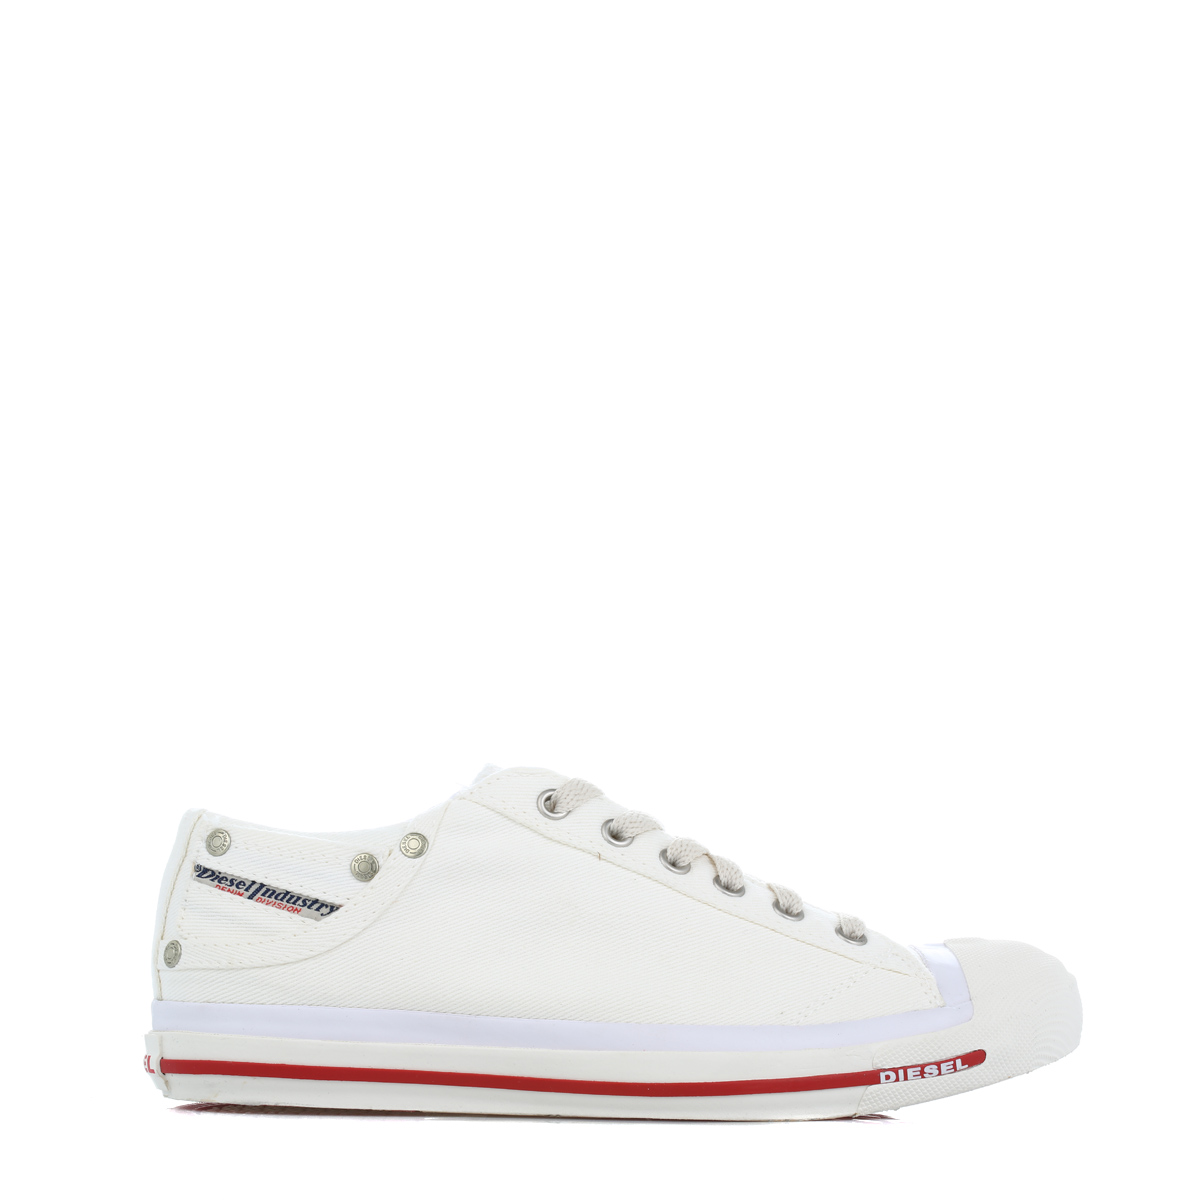 Diesel Exposure Low Men Bright White Red Lace Up Textile Canvas Trainers ff6f2f25b7d